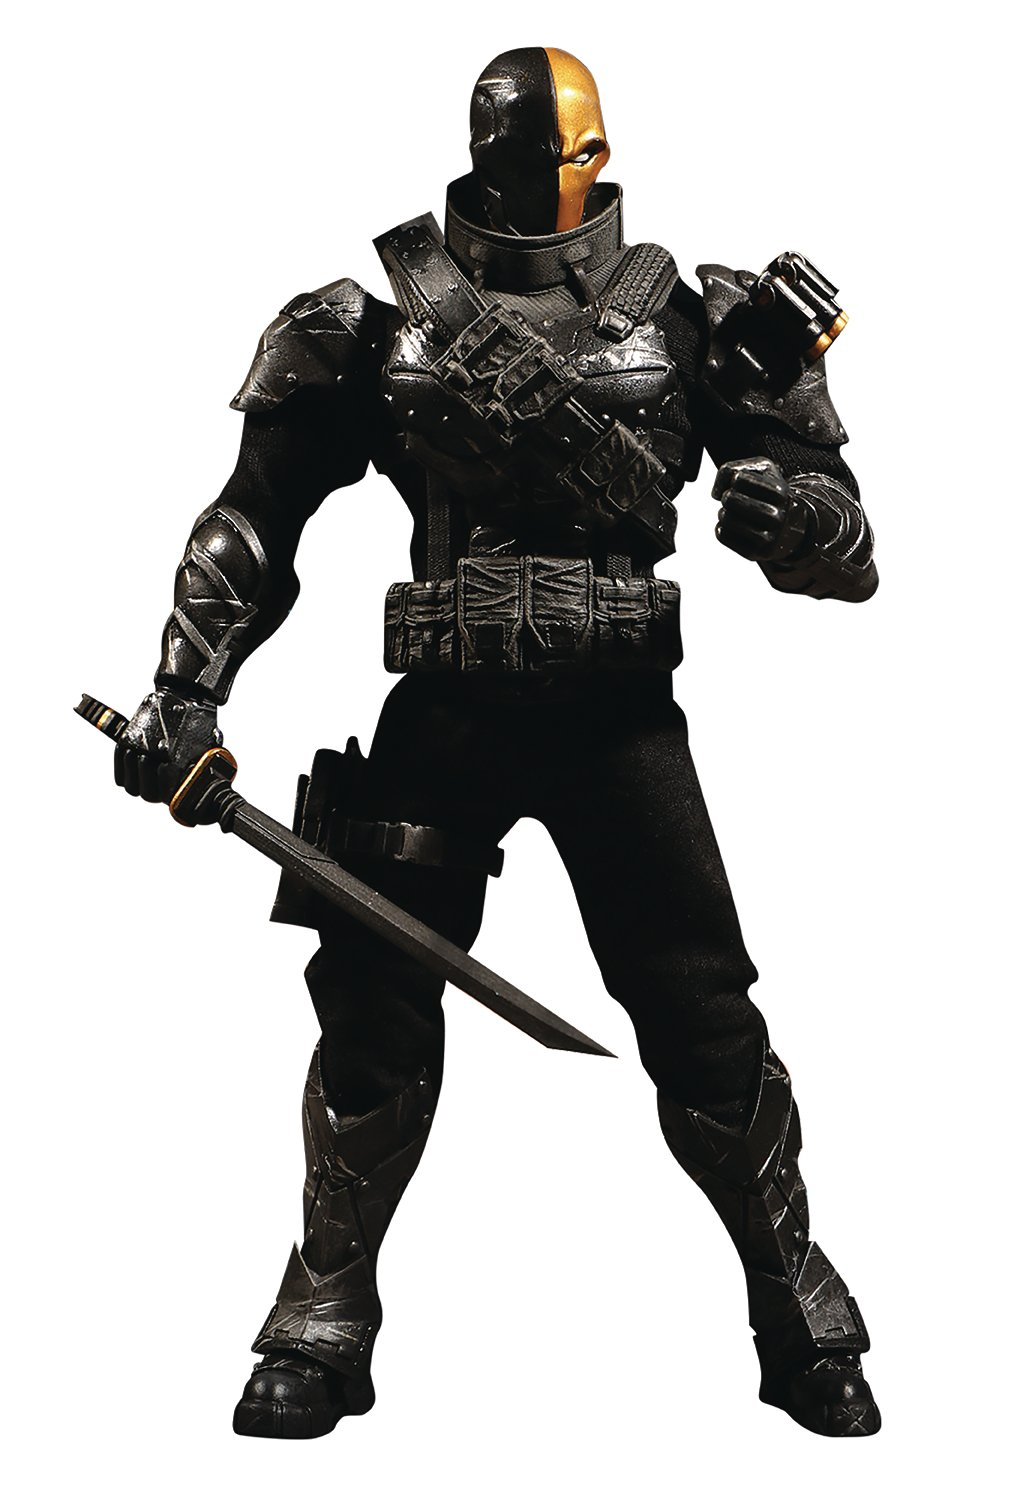 Mezco Toys One:12 Collective: DC Stealth Deathstroke Action Figure by Mezco (Image #1)